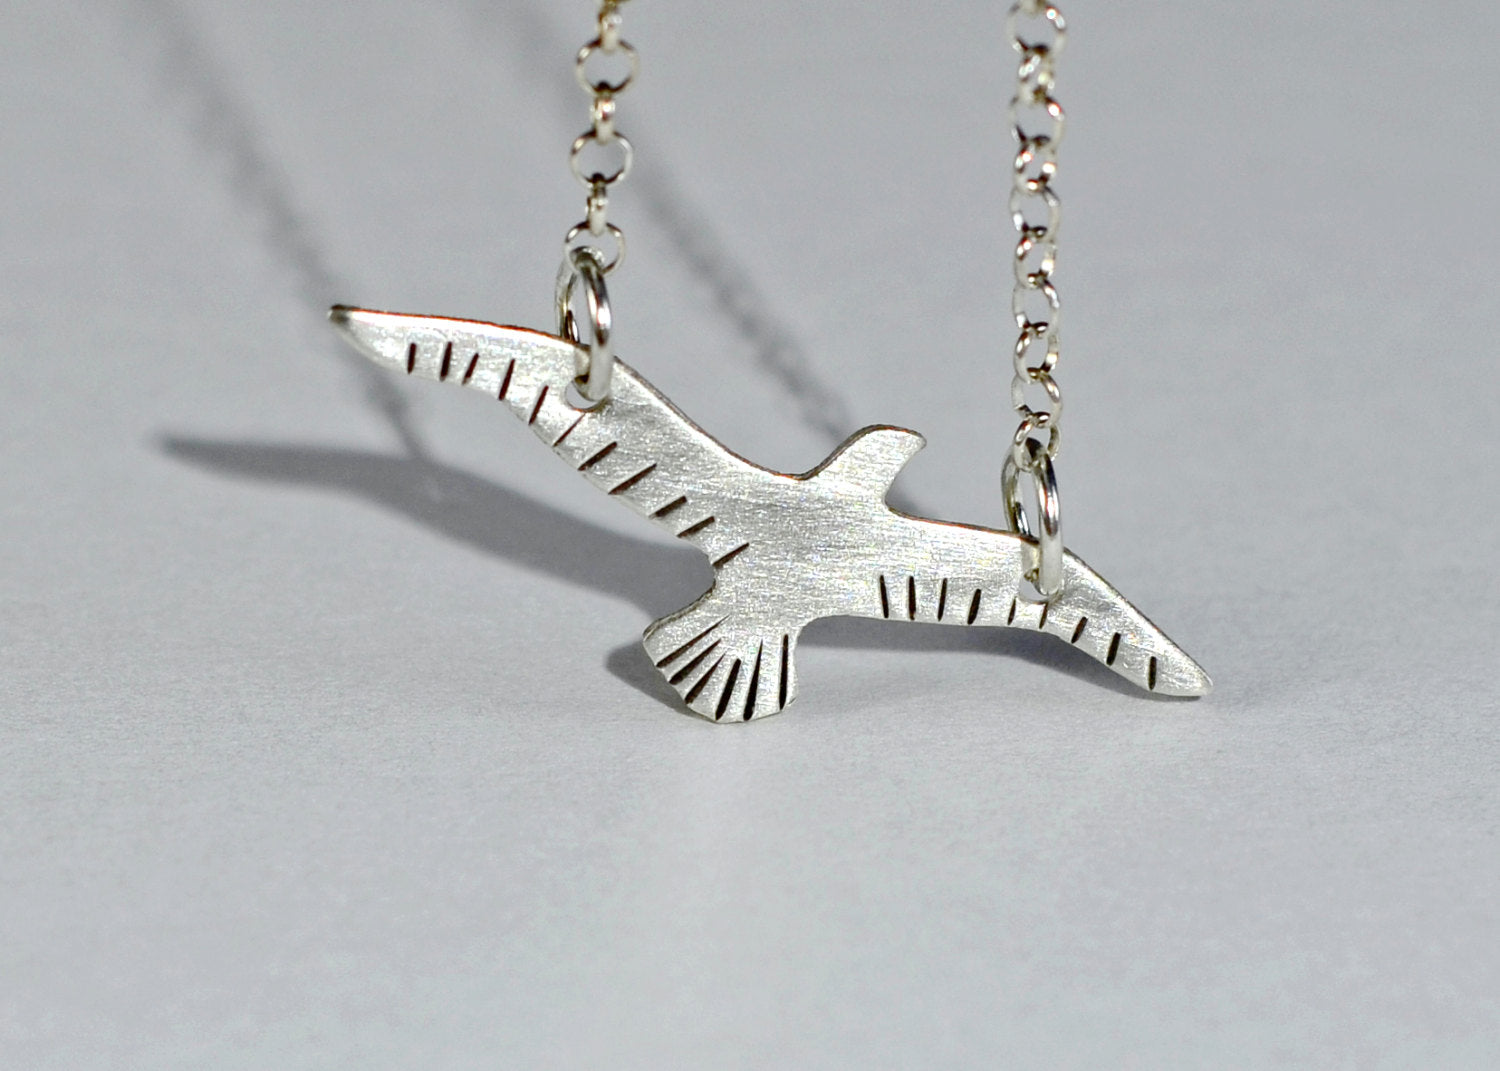 jewelry enamel sterling new format bluebird bird silver swift artisan designs features necklace